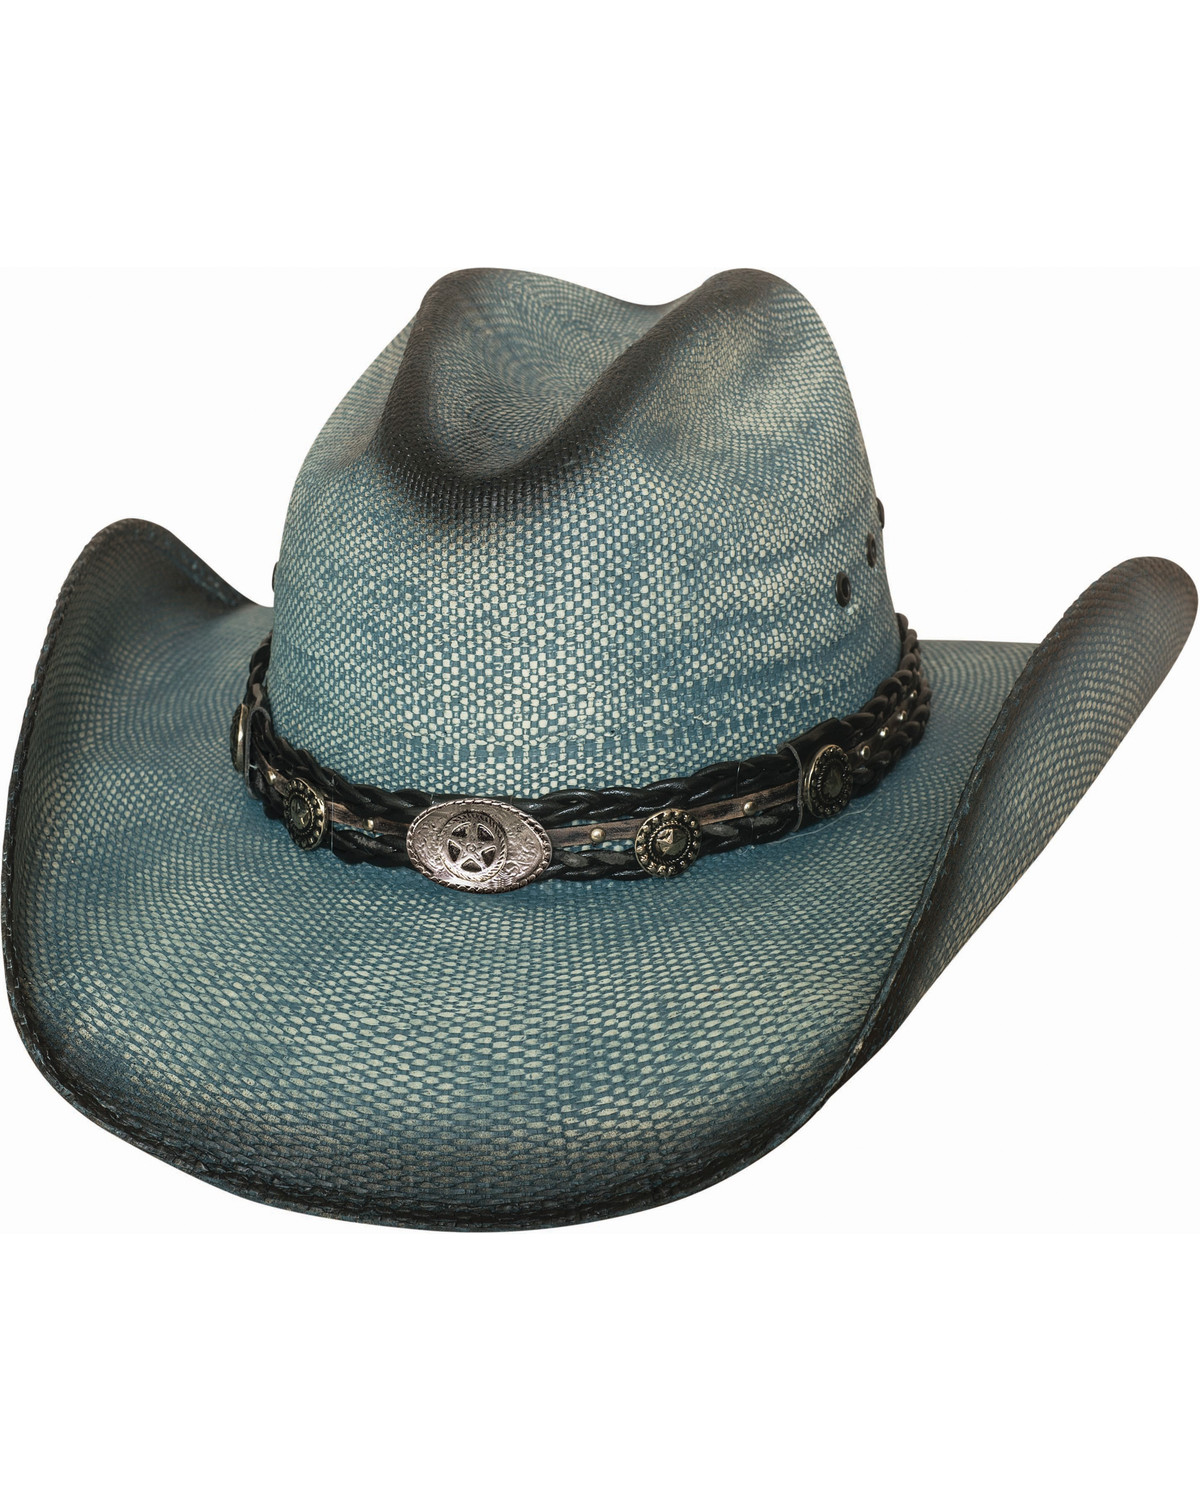 70f3ab9fd4e603 Zoomed Image Bullhide Women's Into You Straw Hat, Blue, hi-res